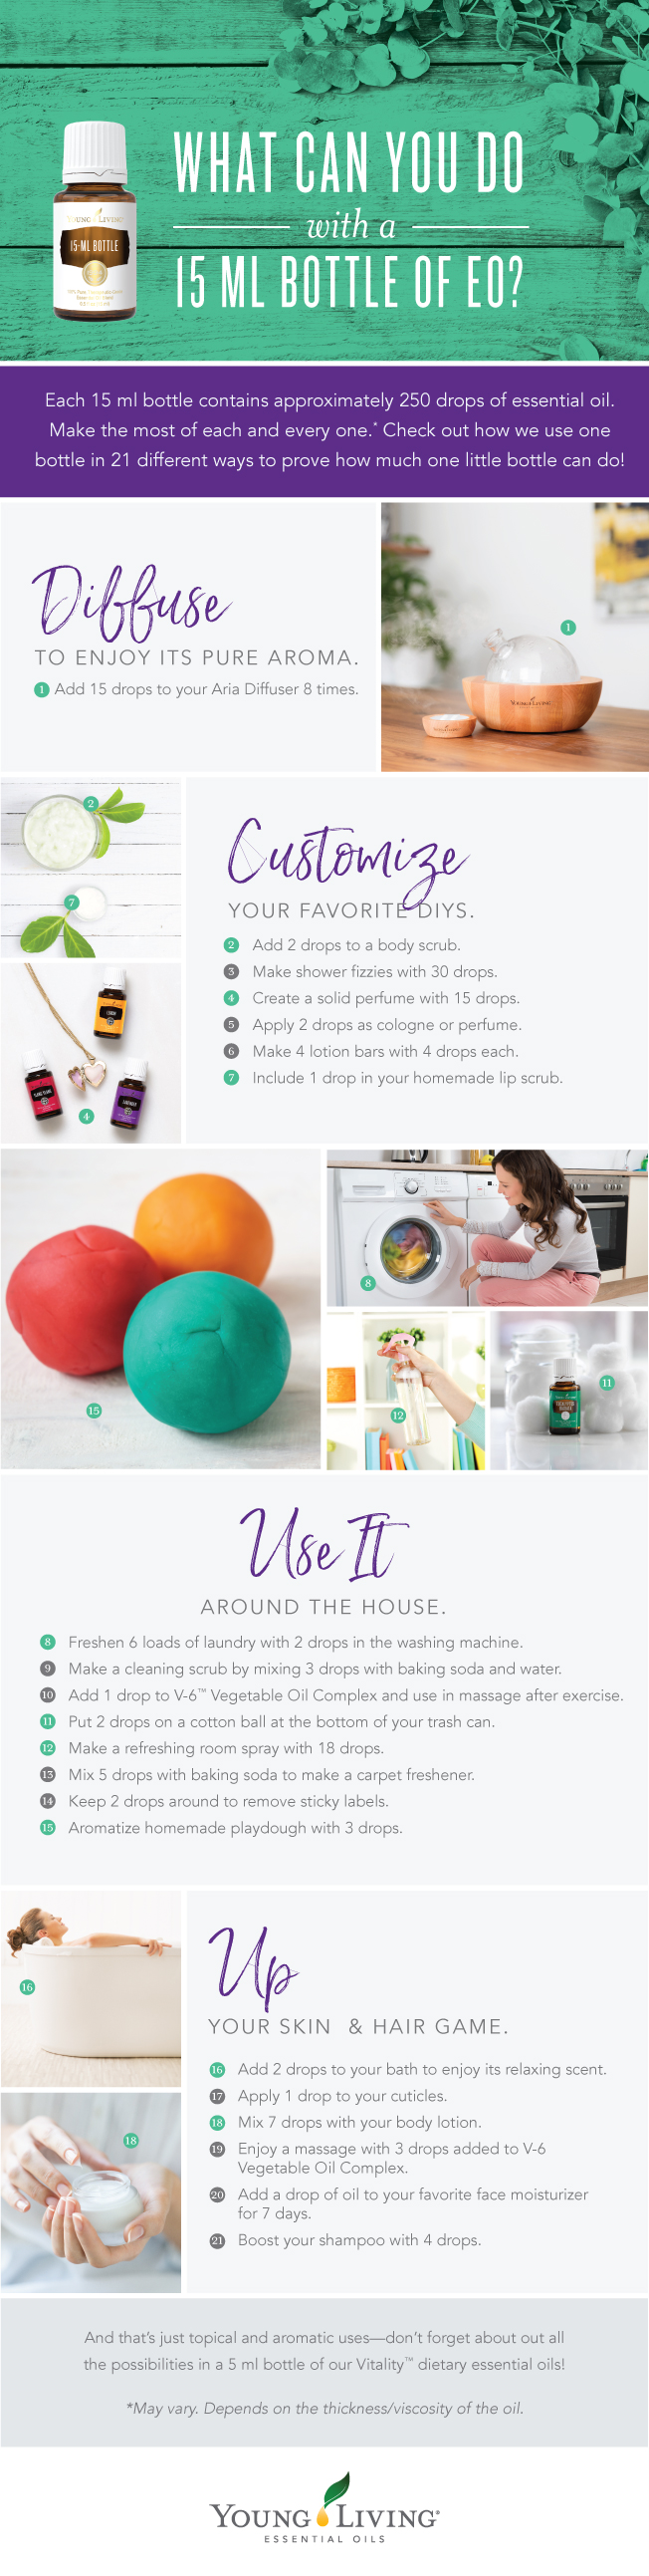 What can you do with a 15 ml bottle of essential oil